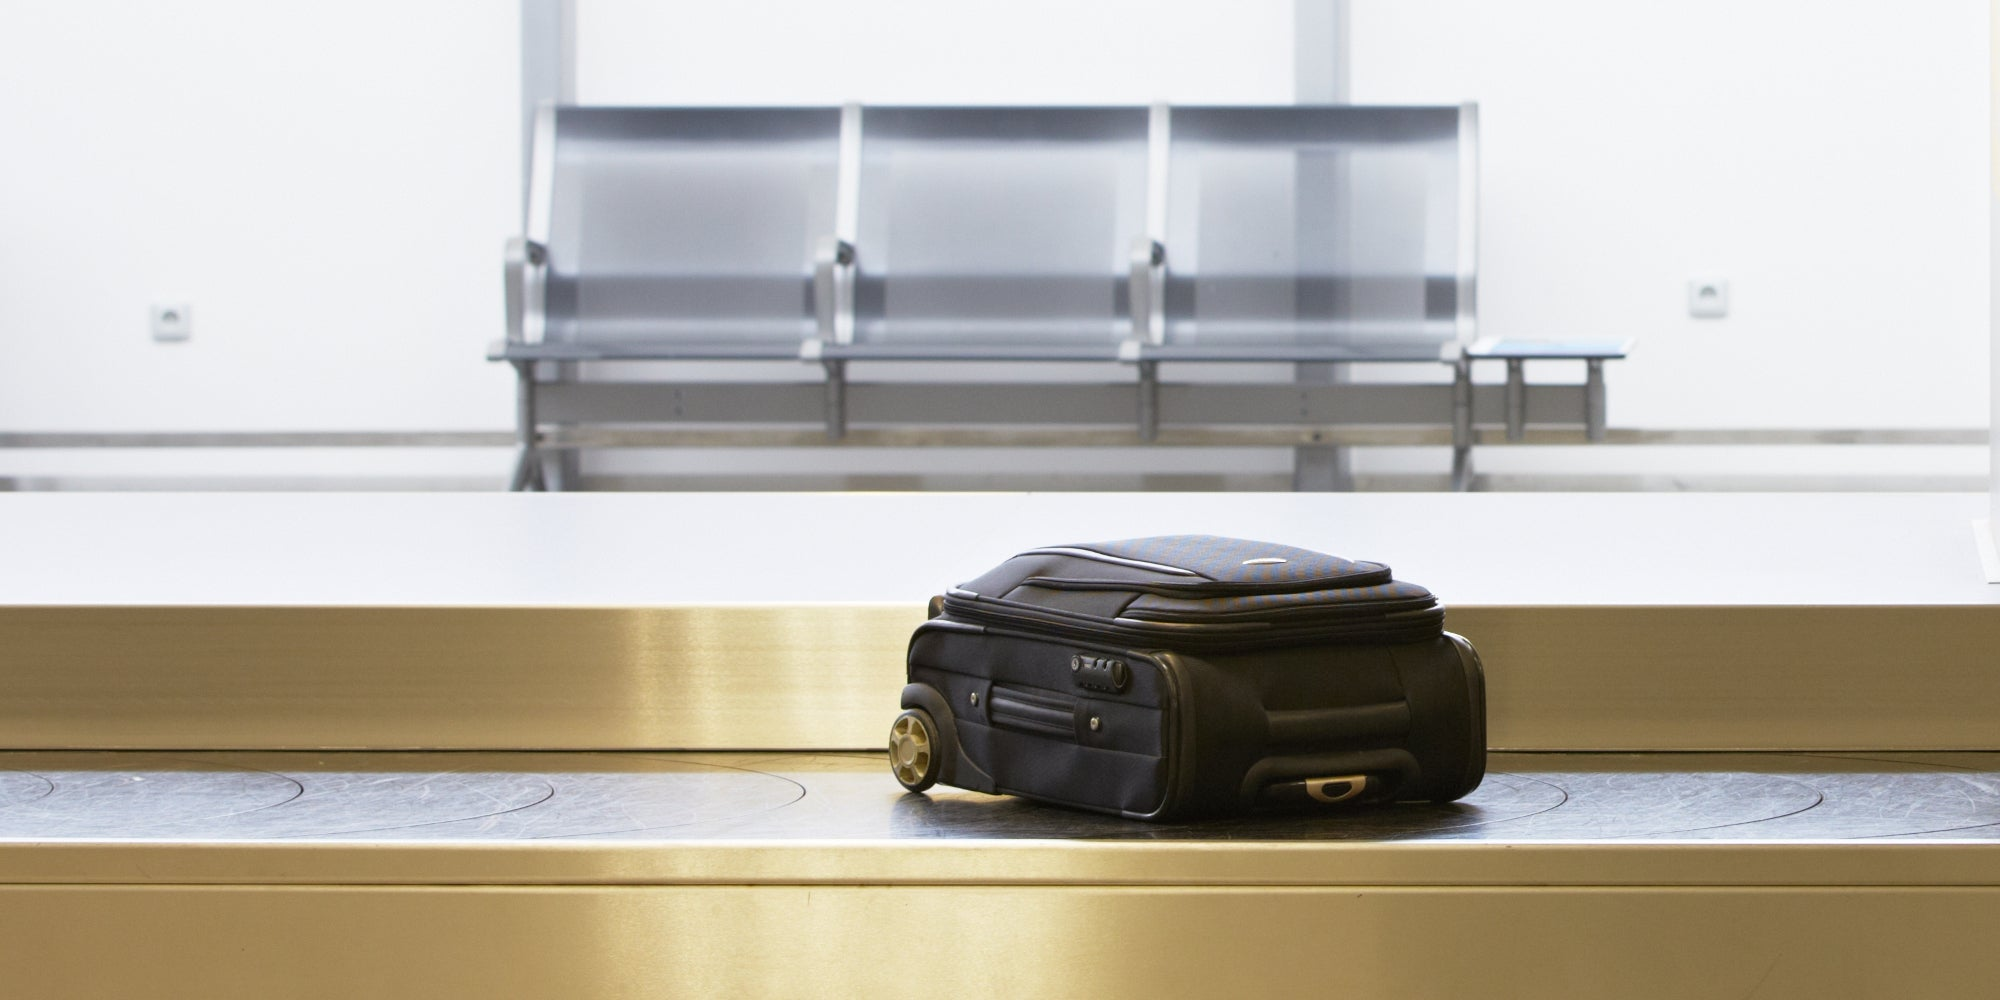 FAA Says You Must Not Pack Lithium Batteries in Your Hold Luggage